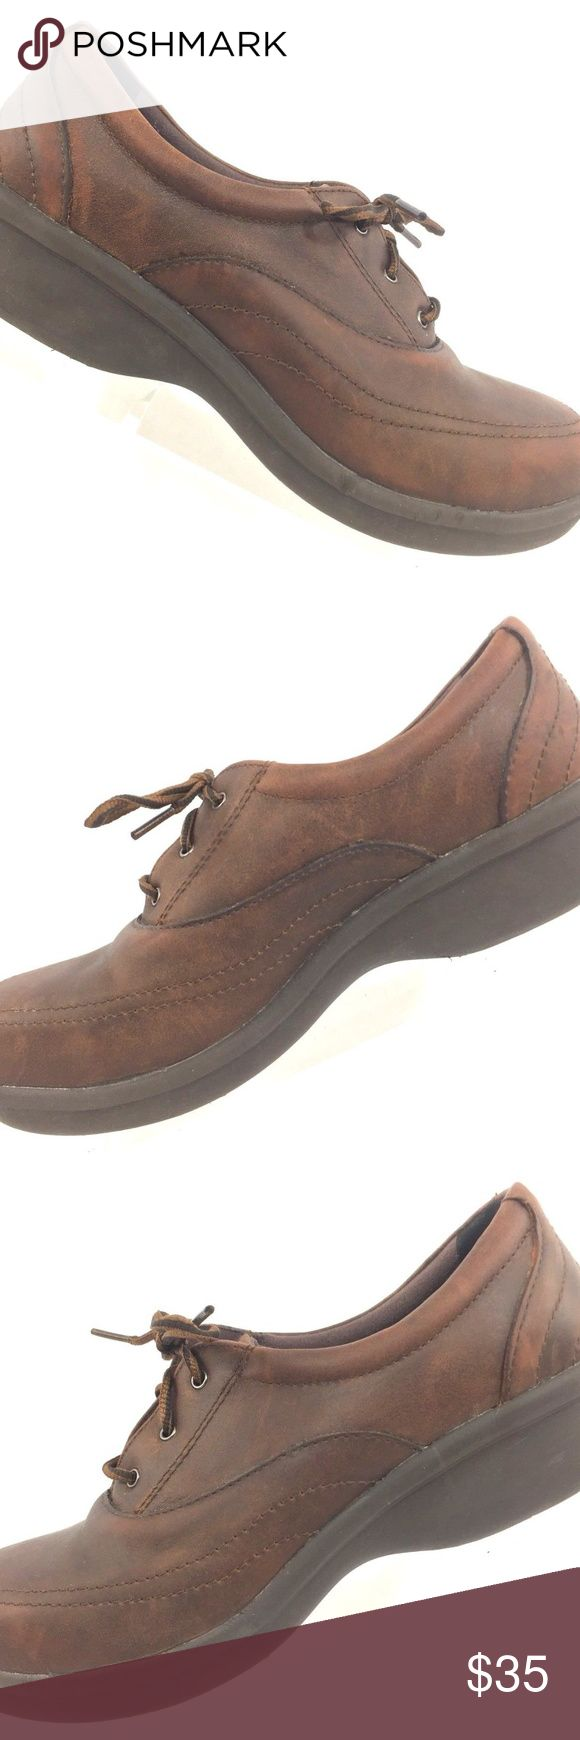 Red Wing Women's ASTMF Steel Toe Brown Work Shoes Red Wing Women's ASTMF 2413-11 Steel Toe Brown Work Leather  Shoes Sz 8 Medium Slip Resistant. Red Wing Shoes Shoes